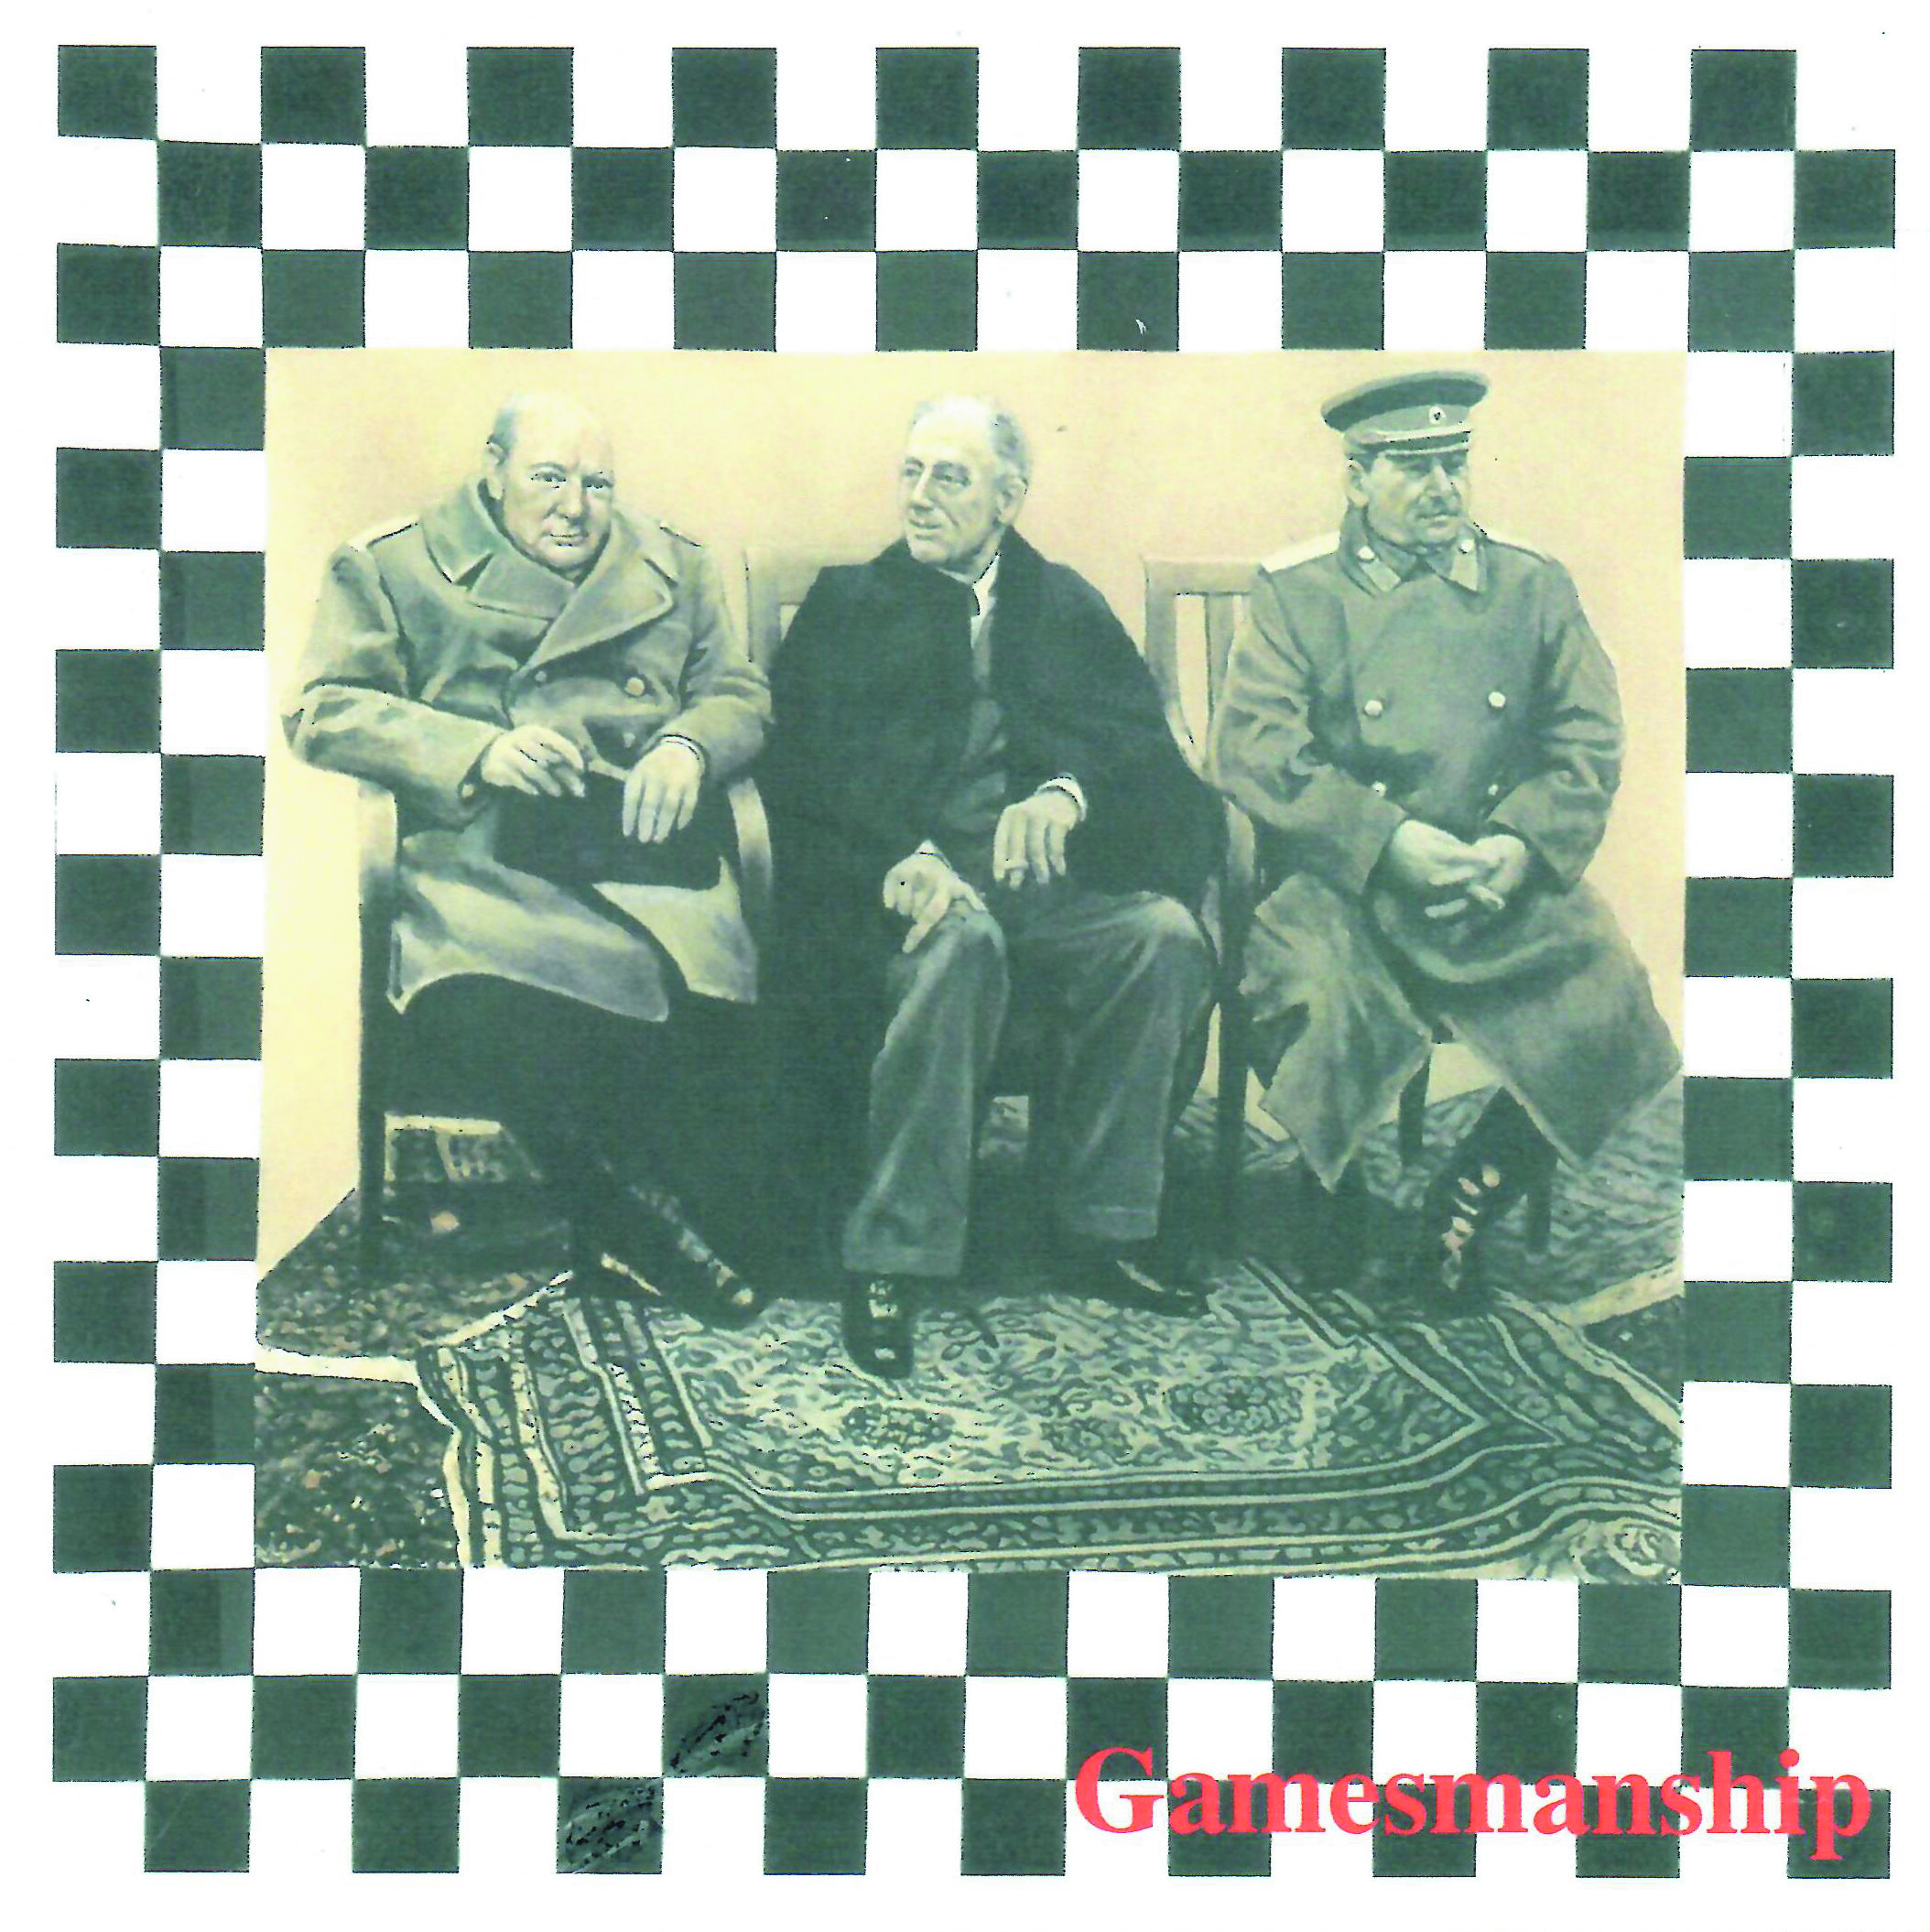 "Winston Churchill, Franklin Roosevelt and Joseph Stalin sit by an ornate carpet in a checkered frame in a piece by Beverly Neumann called ""Gamesmanship"""